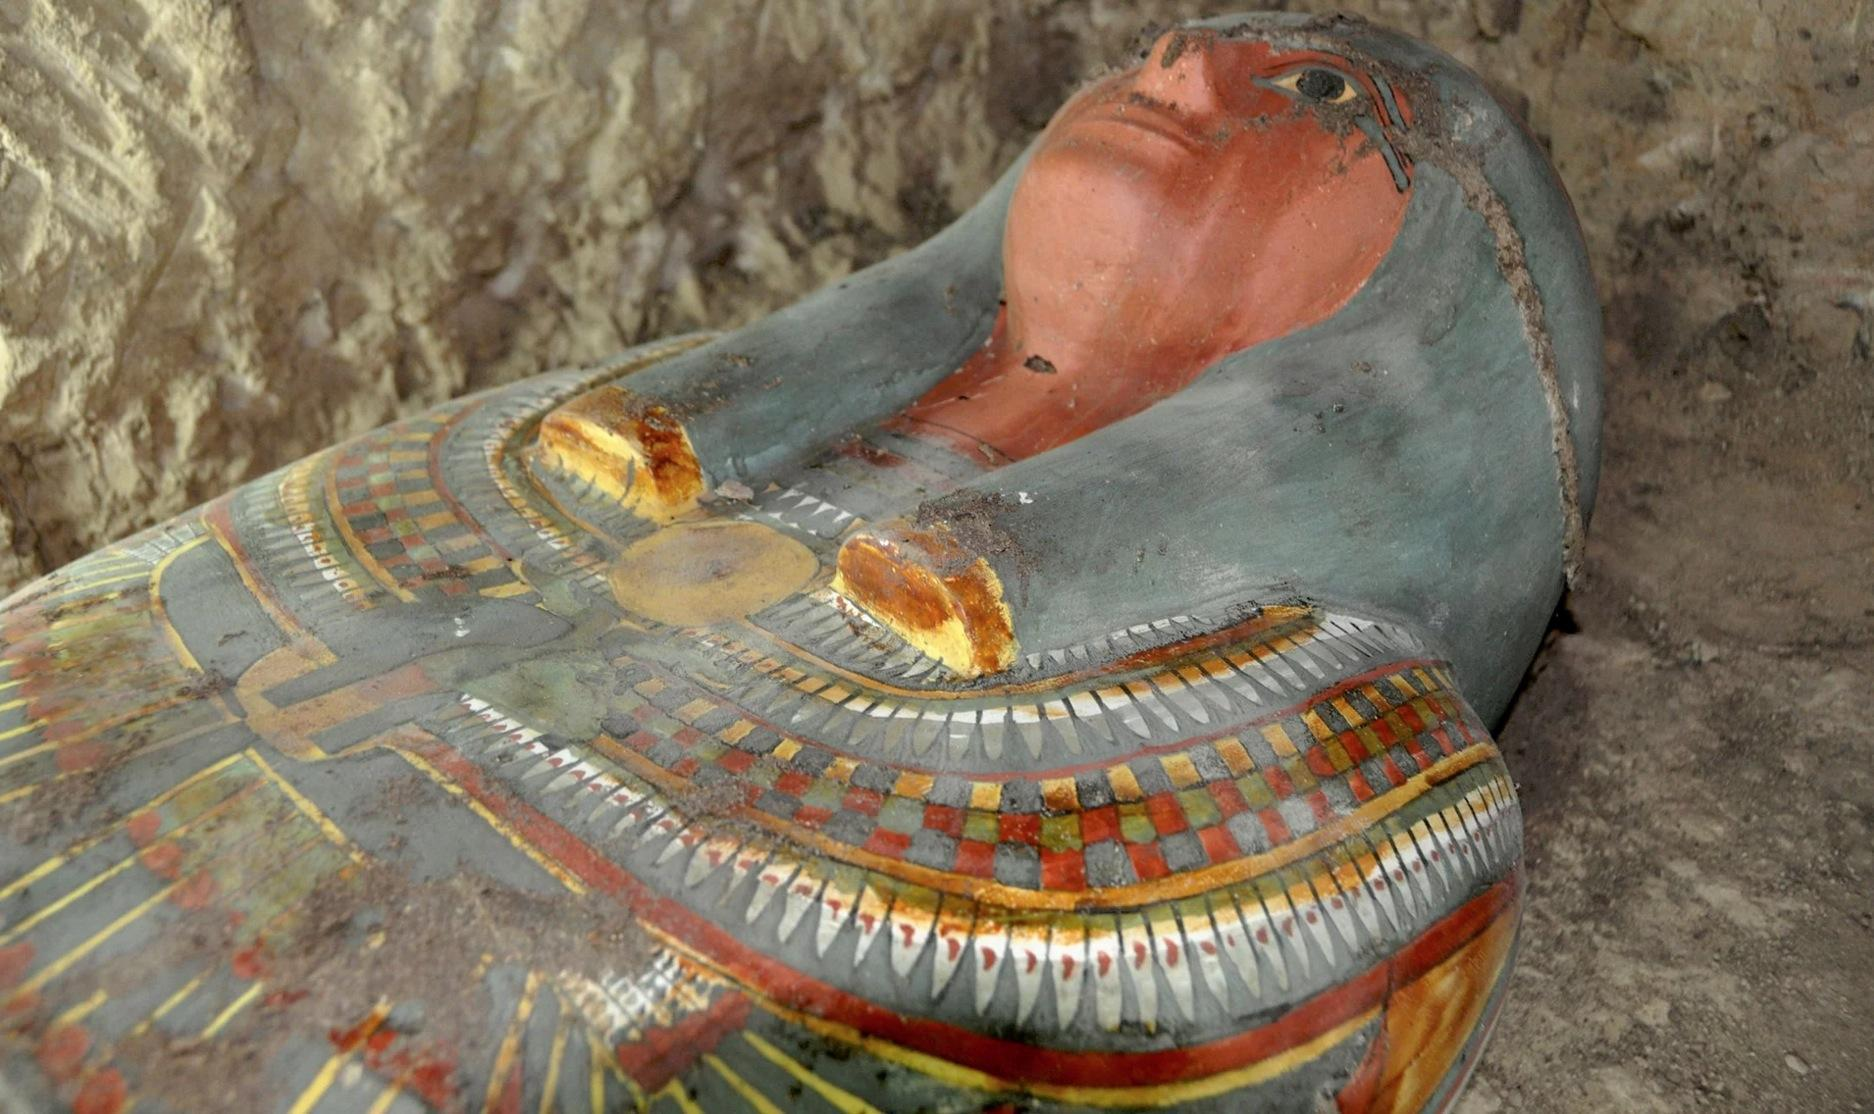 2,500-year-old mummy found in 'very good' condition